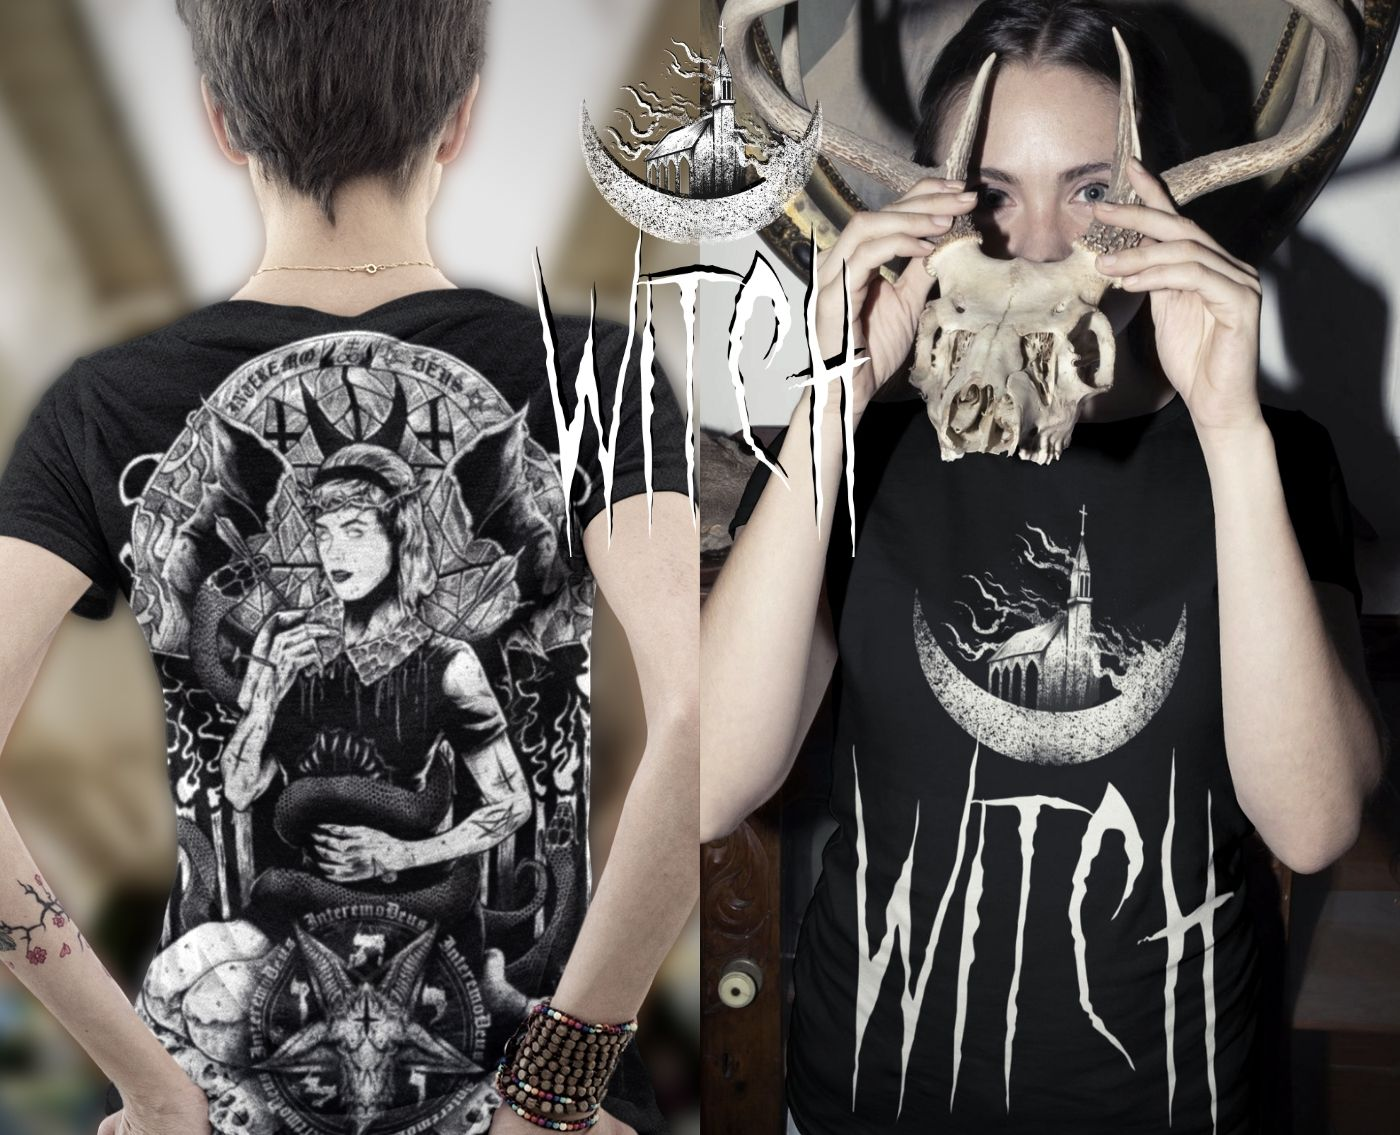 Sabrina the witch satanic with tshirt